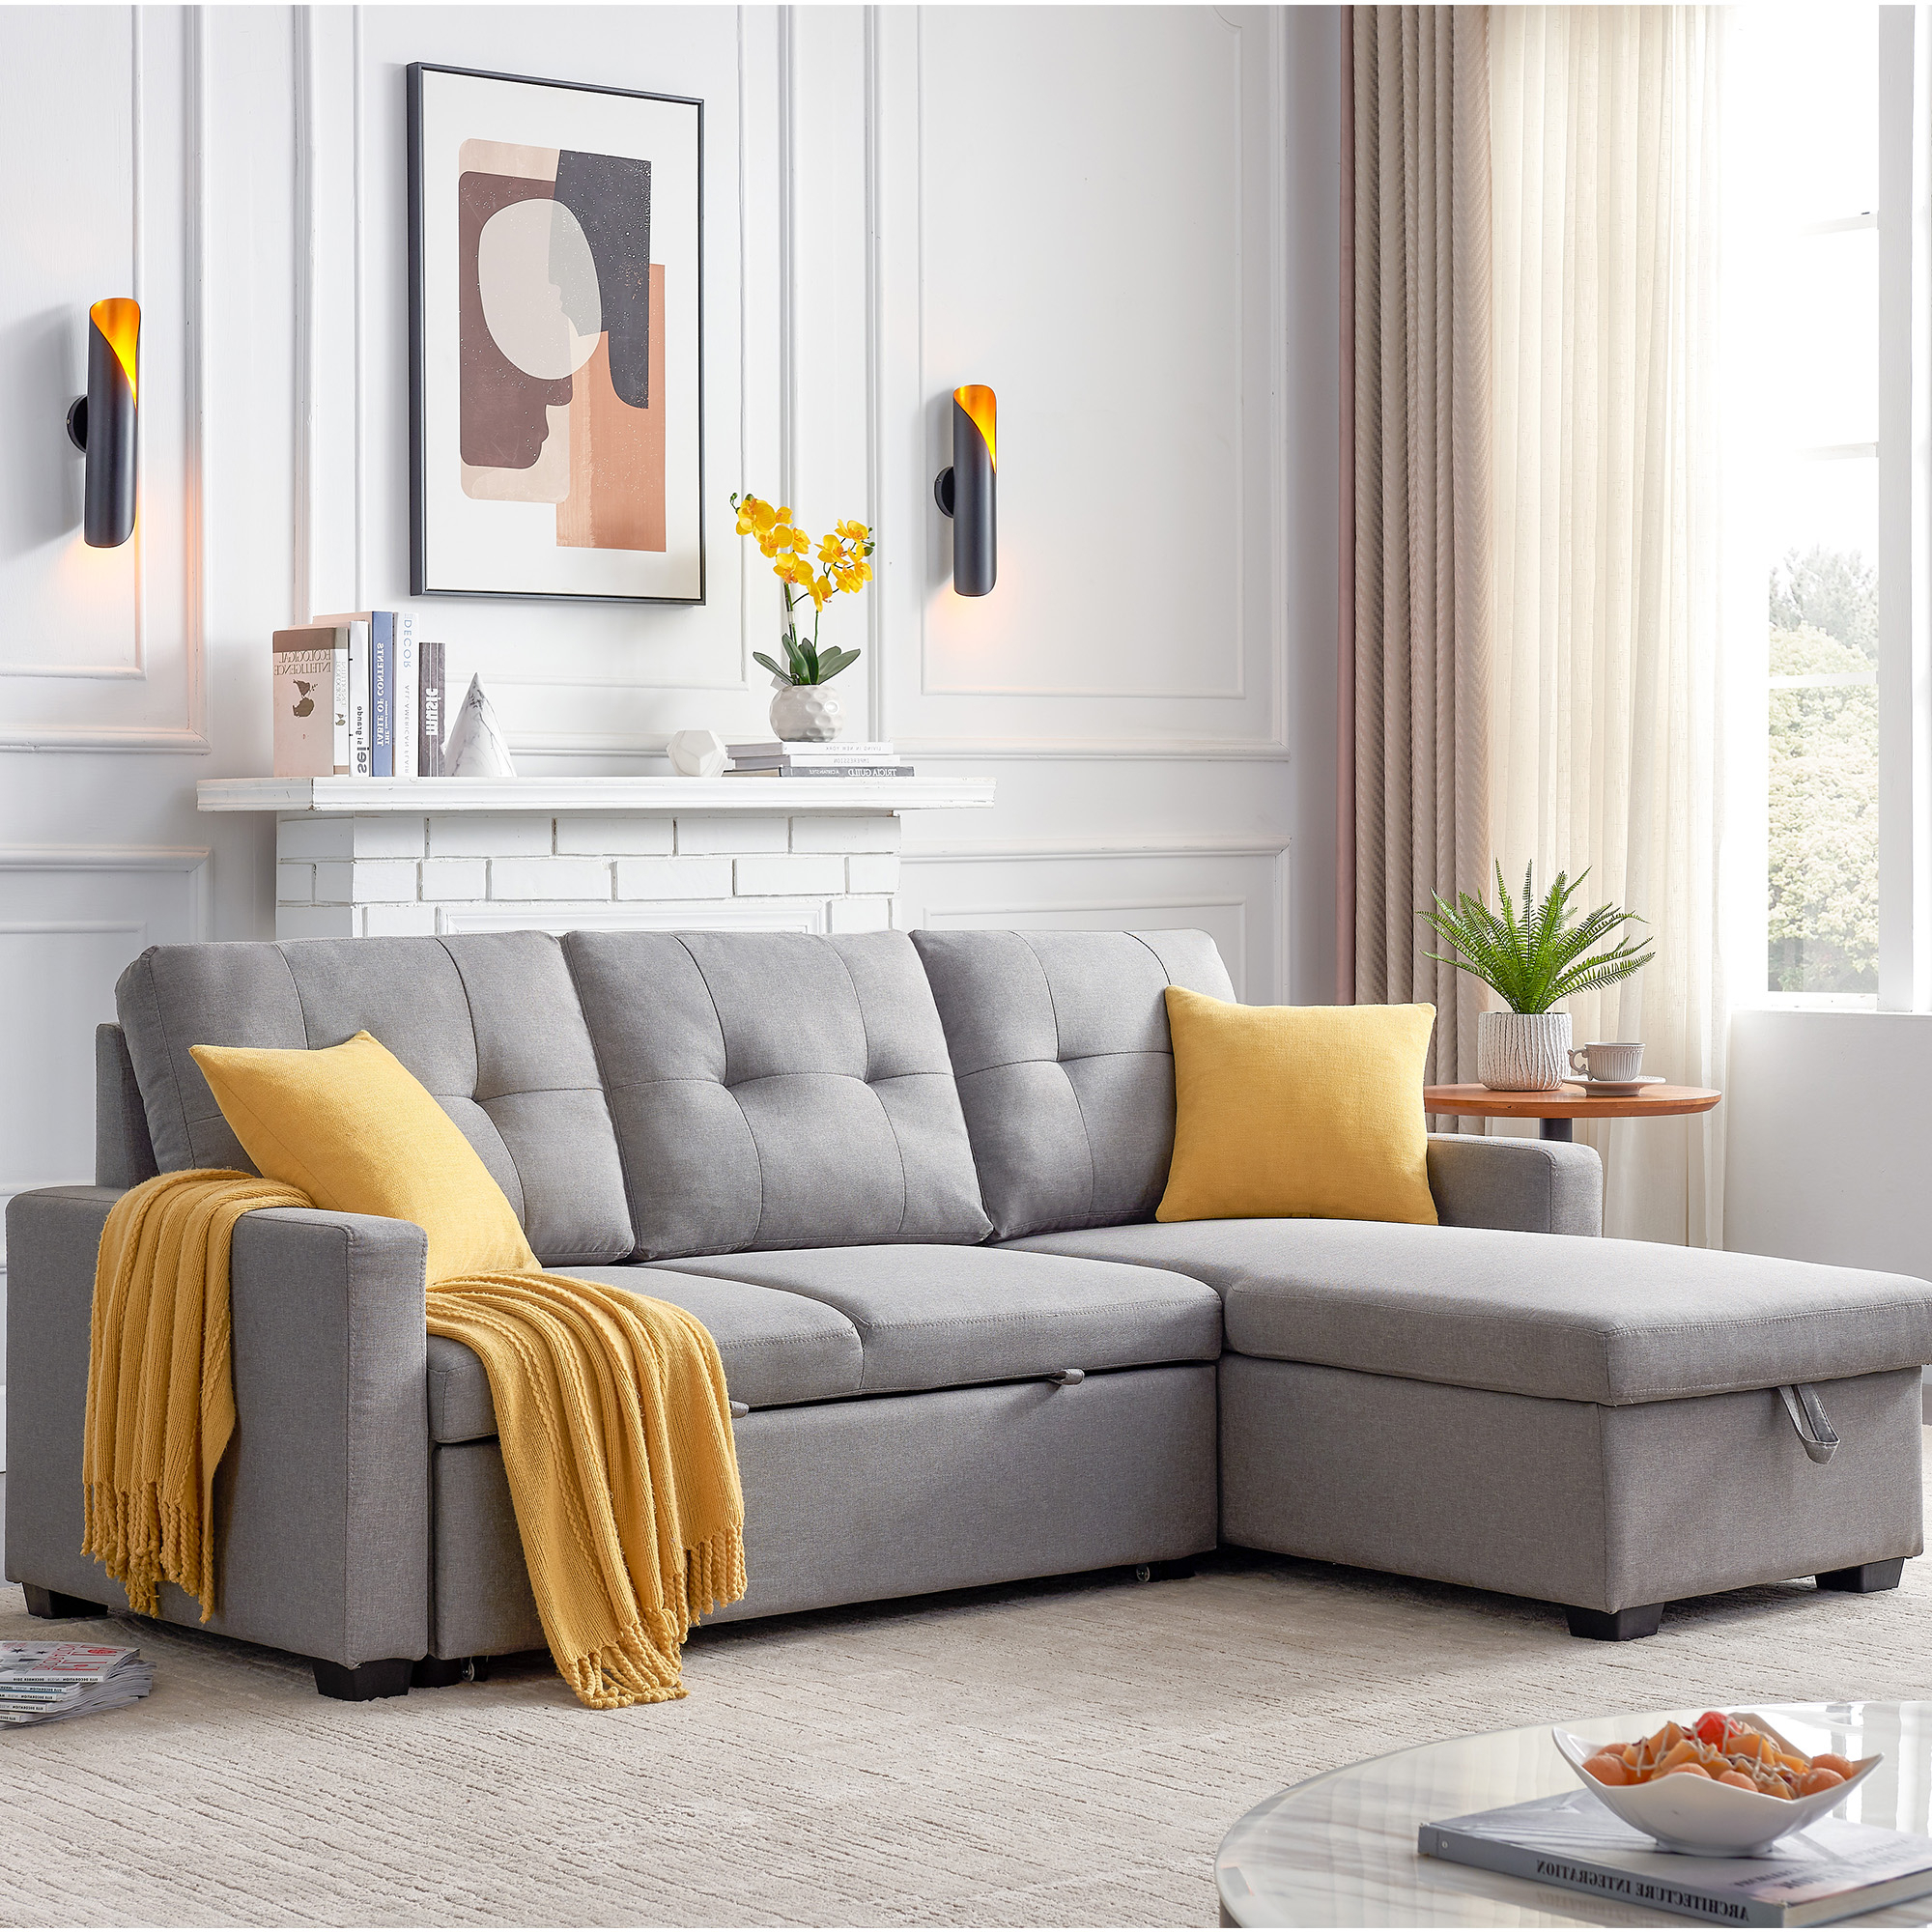 """Tufted 82"""" X 60"""" X 35"""" Modern Sofa Bed With Pull Out Throughout Most Current Easton Small Space Sectional Futon Sofas (View 1 of 25)"""